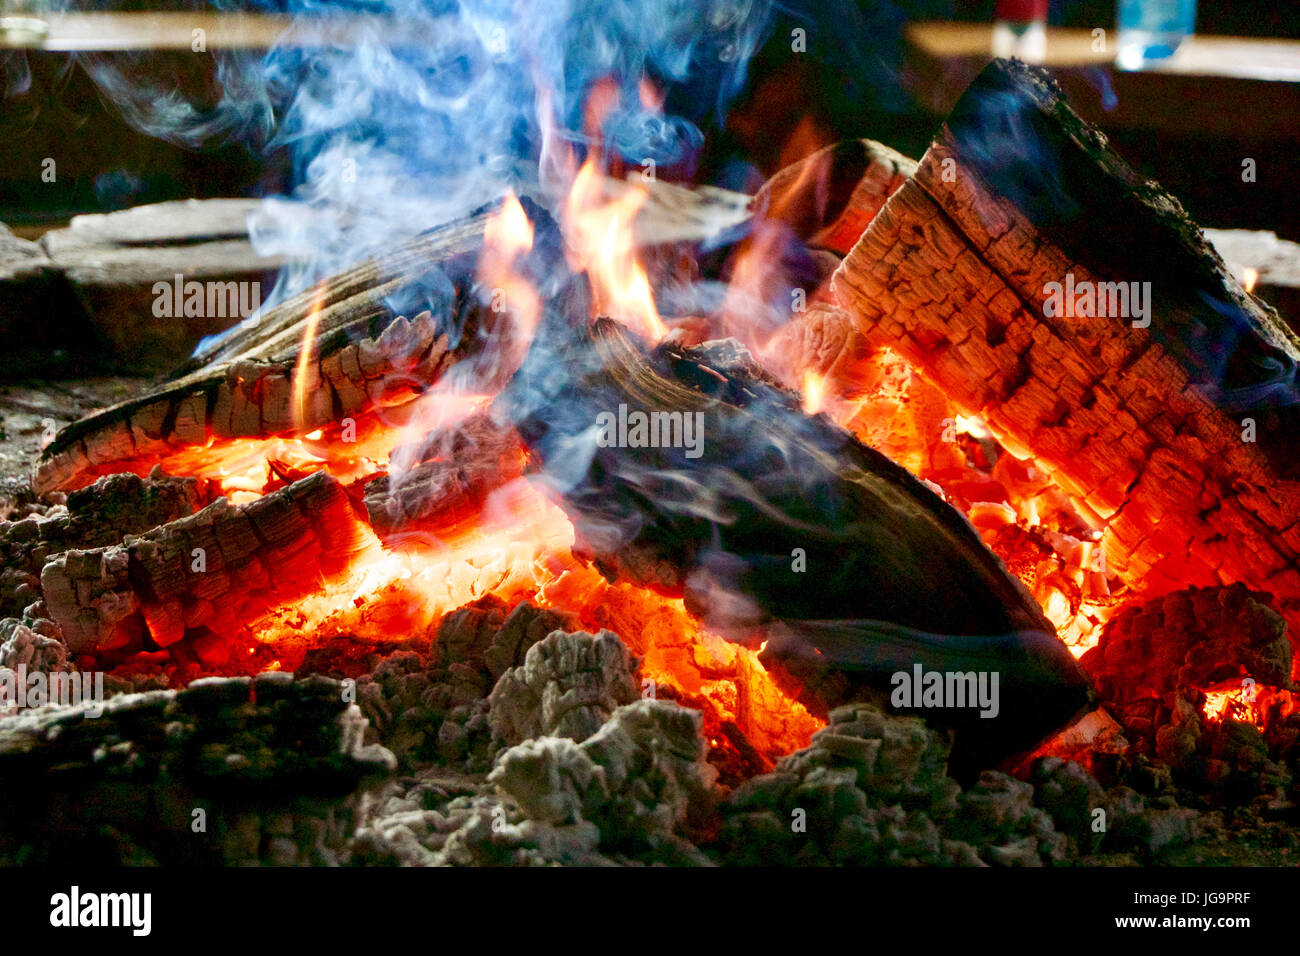 Campfire in a BBQ-hut - Stock Image